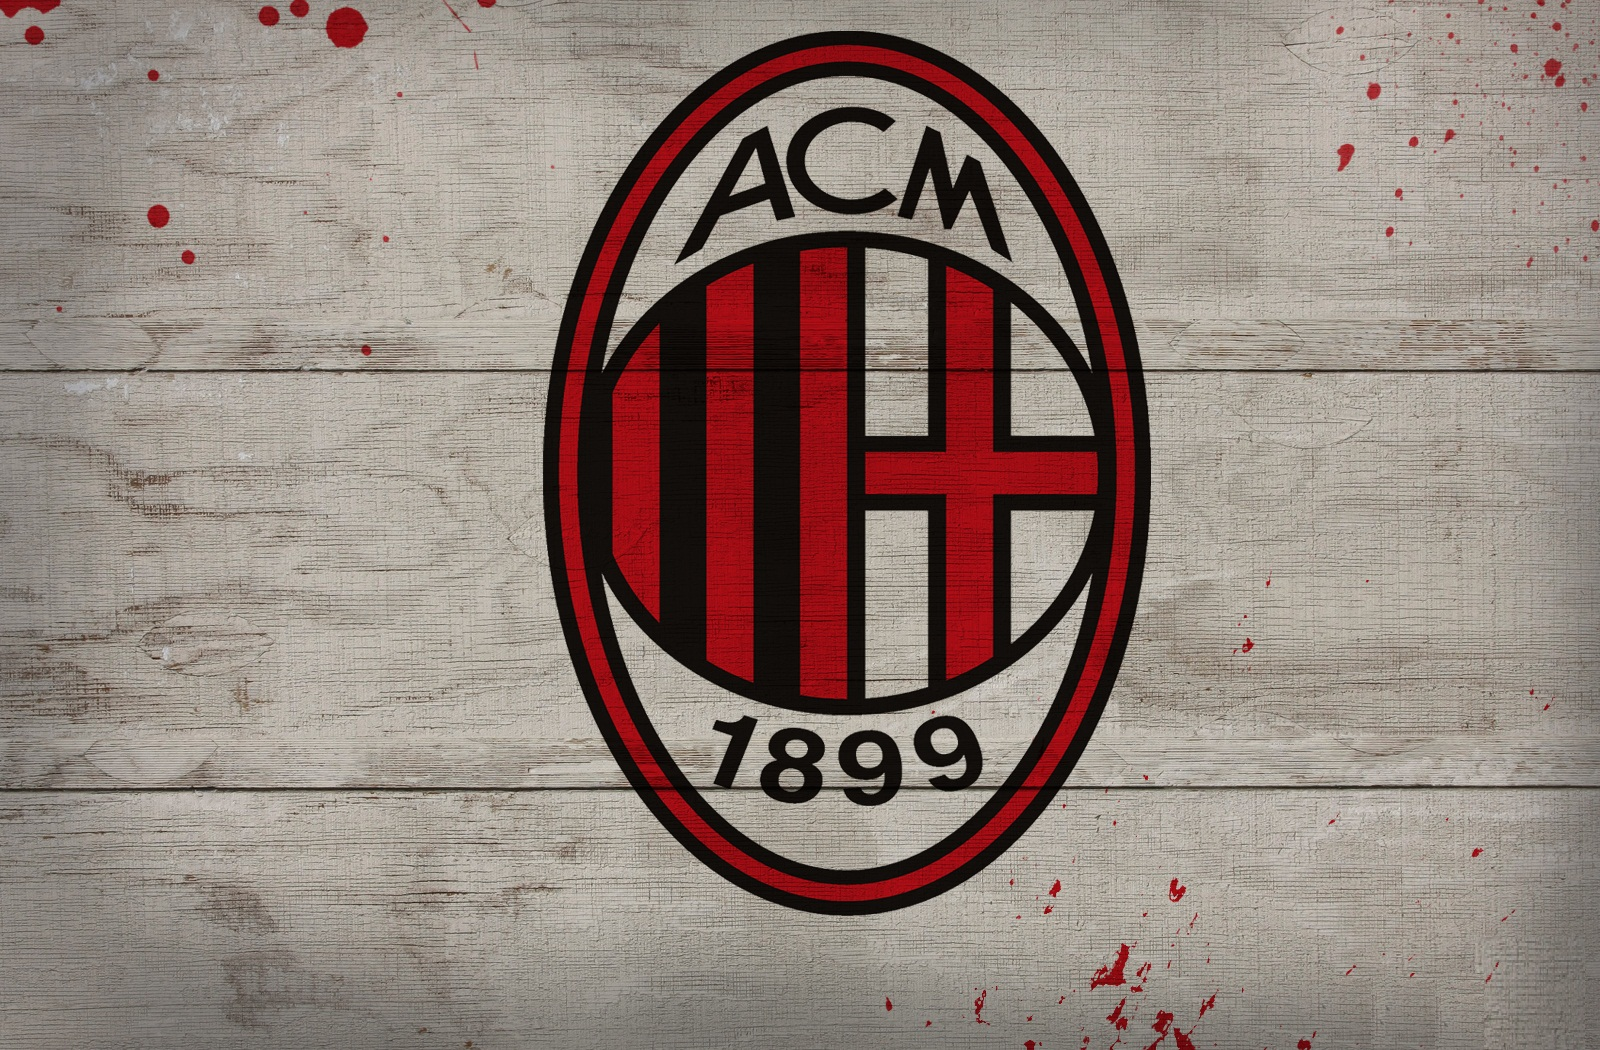 Ac milan football club logo 1600 x 1050 download close